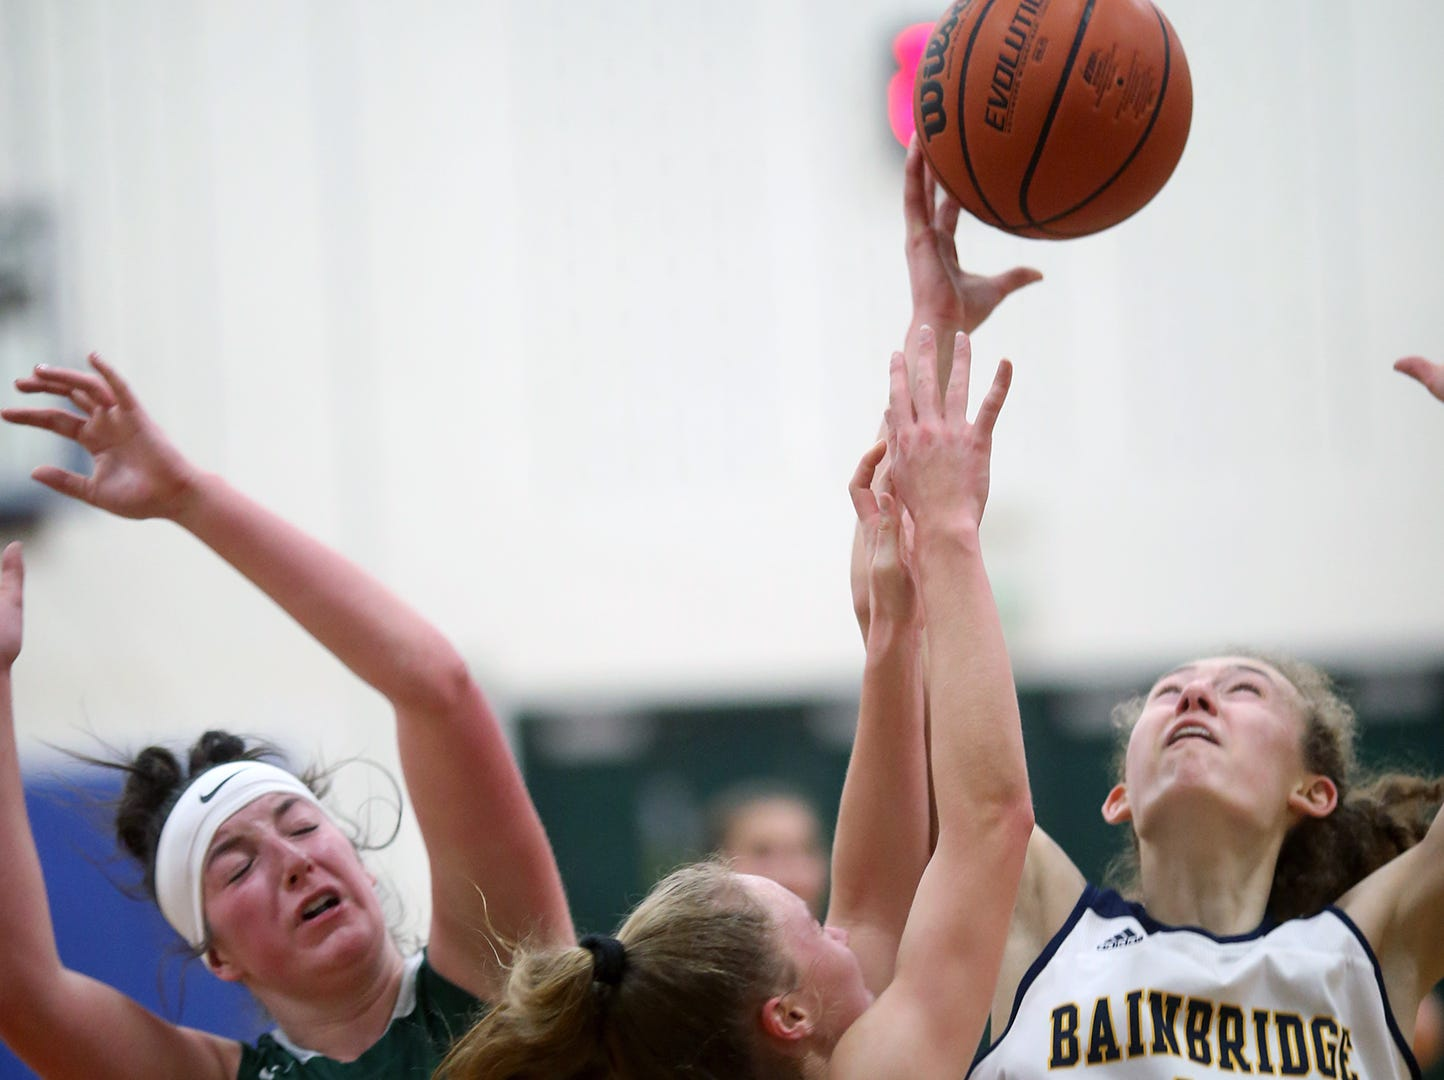 The Bainbridge girls basketball team played Port Angeles at Bainbridge, on Wednesday, Nov. 28, 2018. The Bainbridge girls basketball team played Port Angeles at Bainbridge, on Wednesday, Nov. 28, 2018. Bainbridge player Olivia Wikstrom gets a rebound from Port Angeles defender Aeverie Politika..